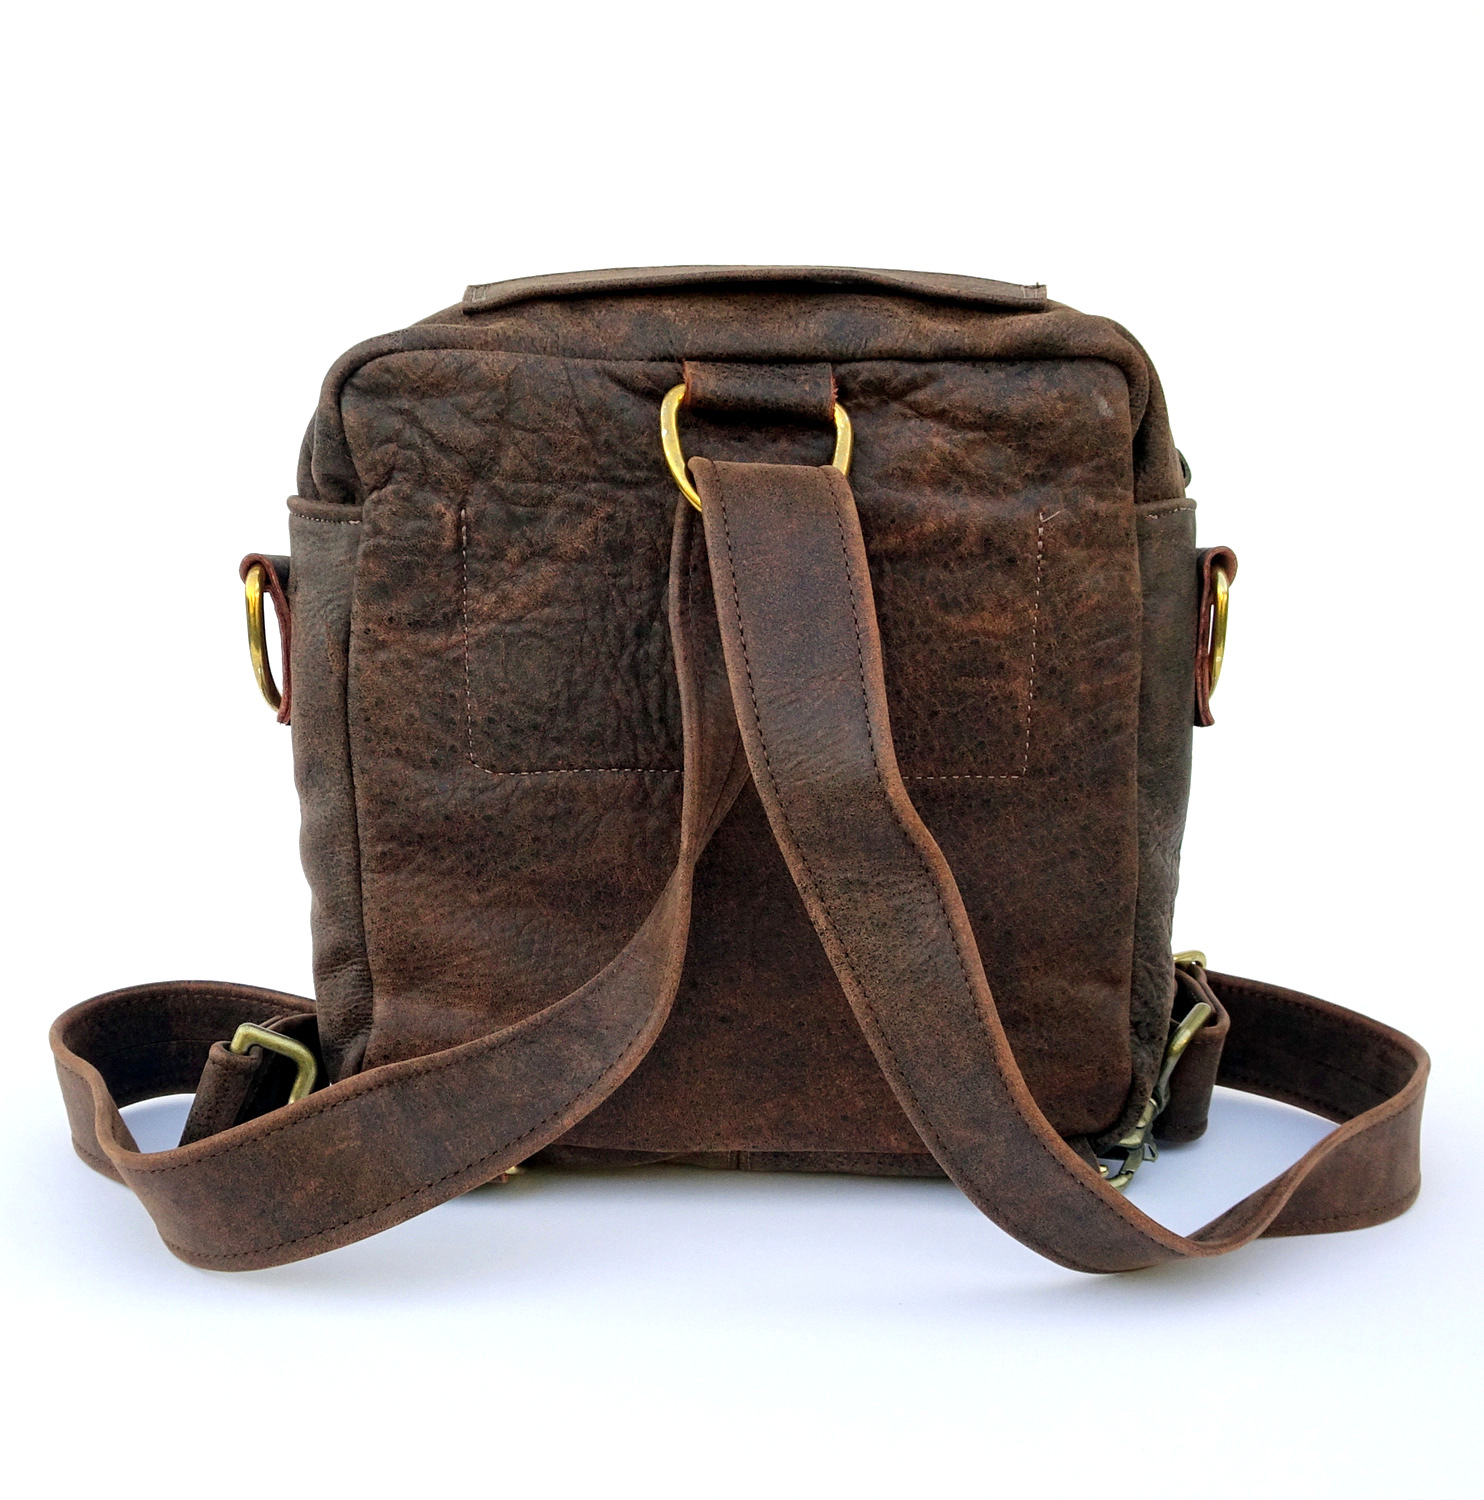 4-Handcrafted Leather Shoulder Bag, Man Up, LaPlace Leather, Tennessee-003.JPG